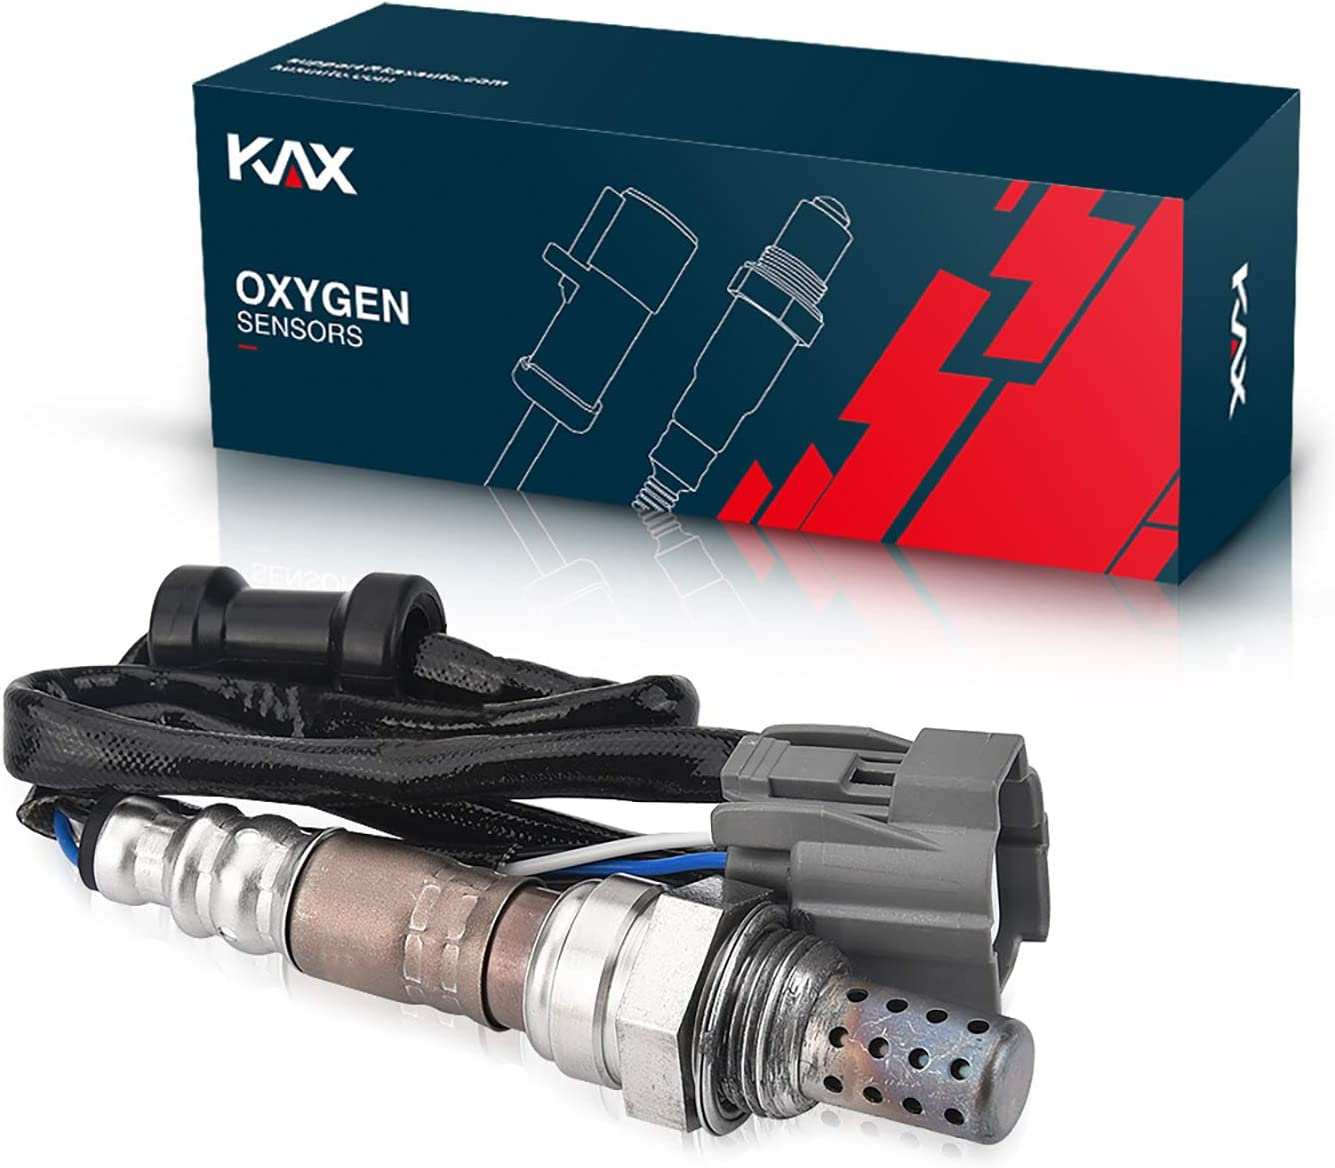 All stores are sold KAX Oxygen Sensor 250-24343 fit for excellence O CL Accord TL Civic Odyssey